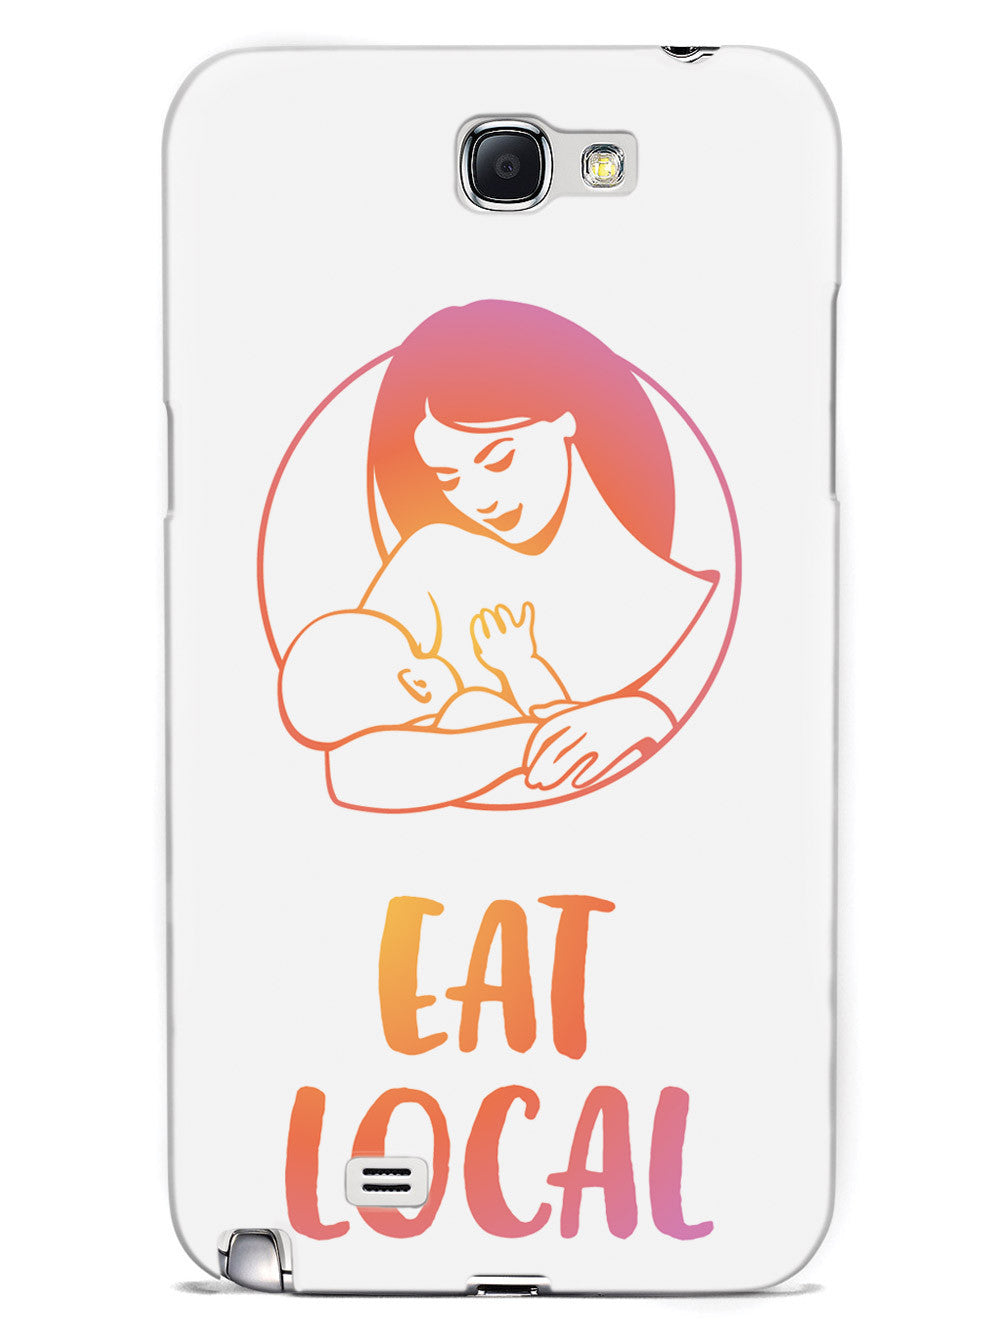 Eat Local - Breastfeeding Awareness Case